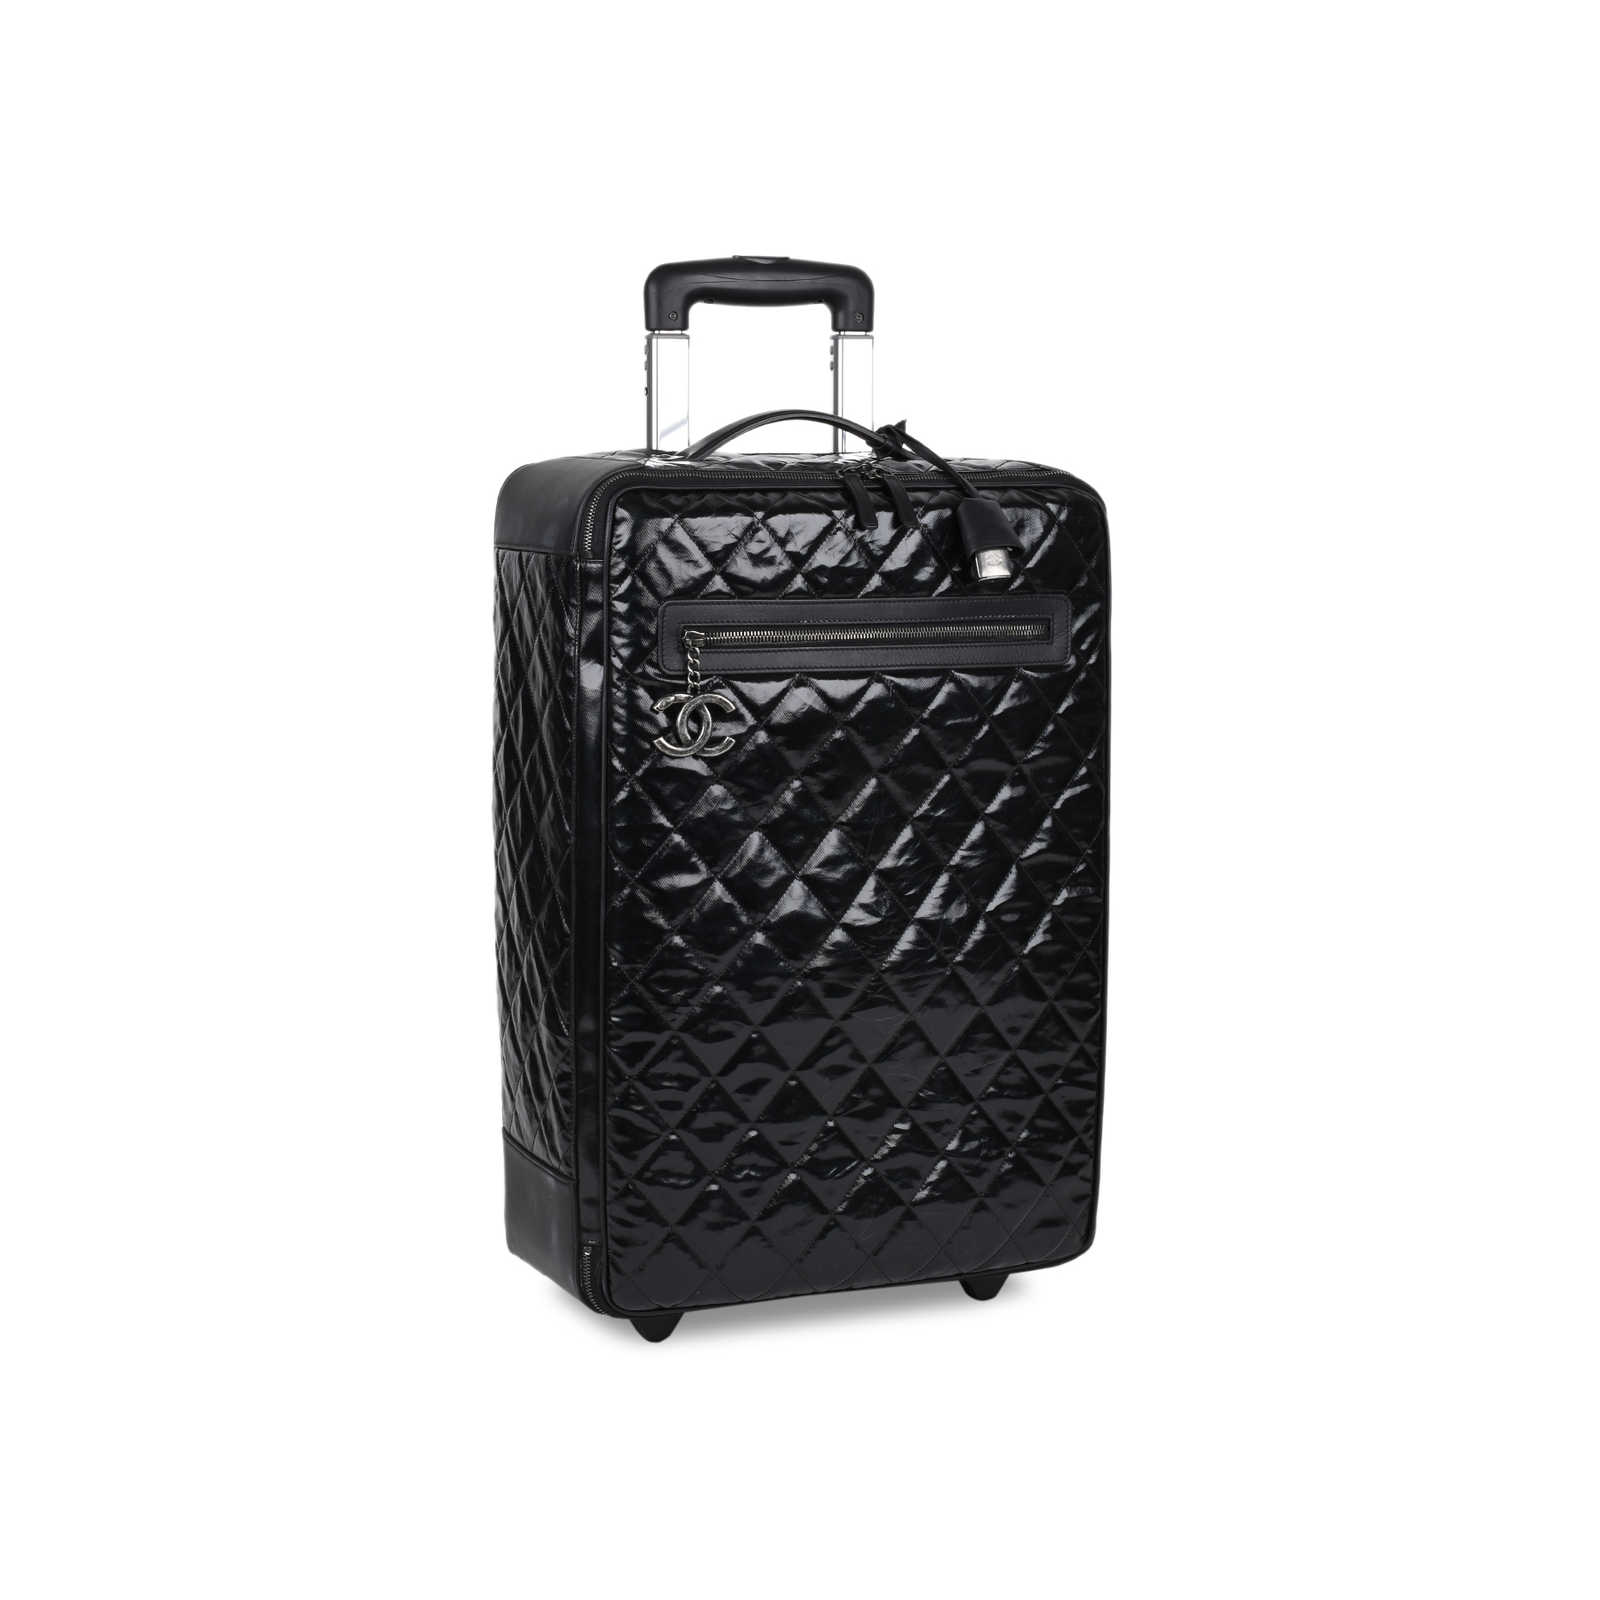 caf11ce3ccb6 ... Authentic Second Hand Chanel Diamond Quilted Rolling Luggage  (PSS-200-01509) ...